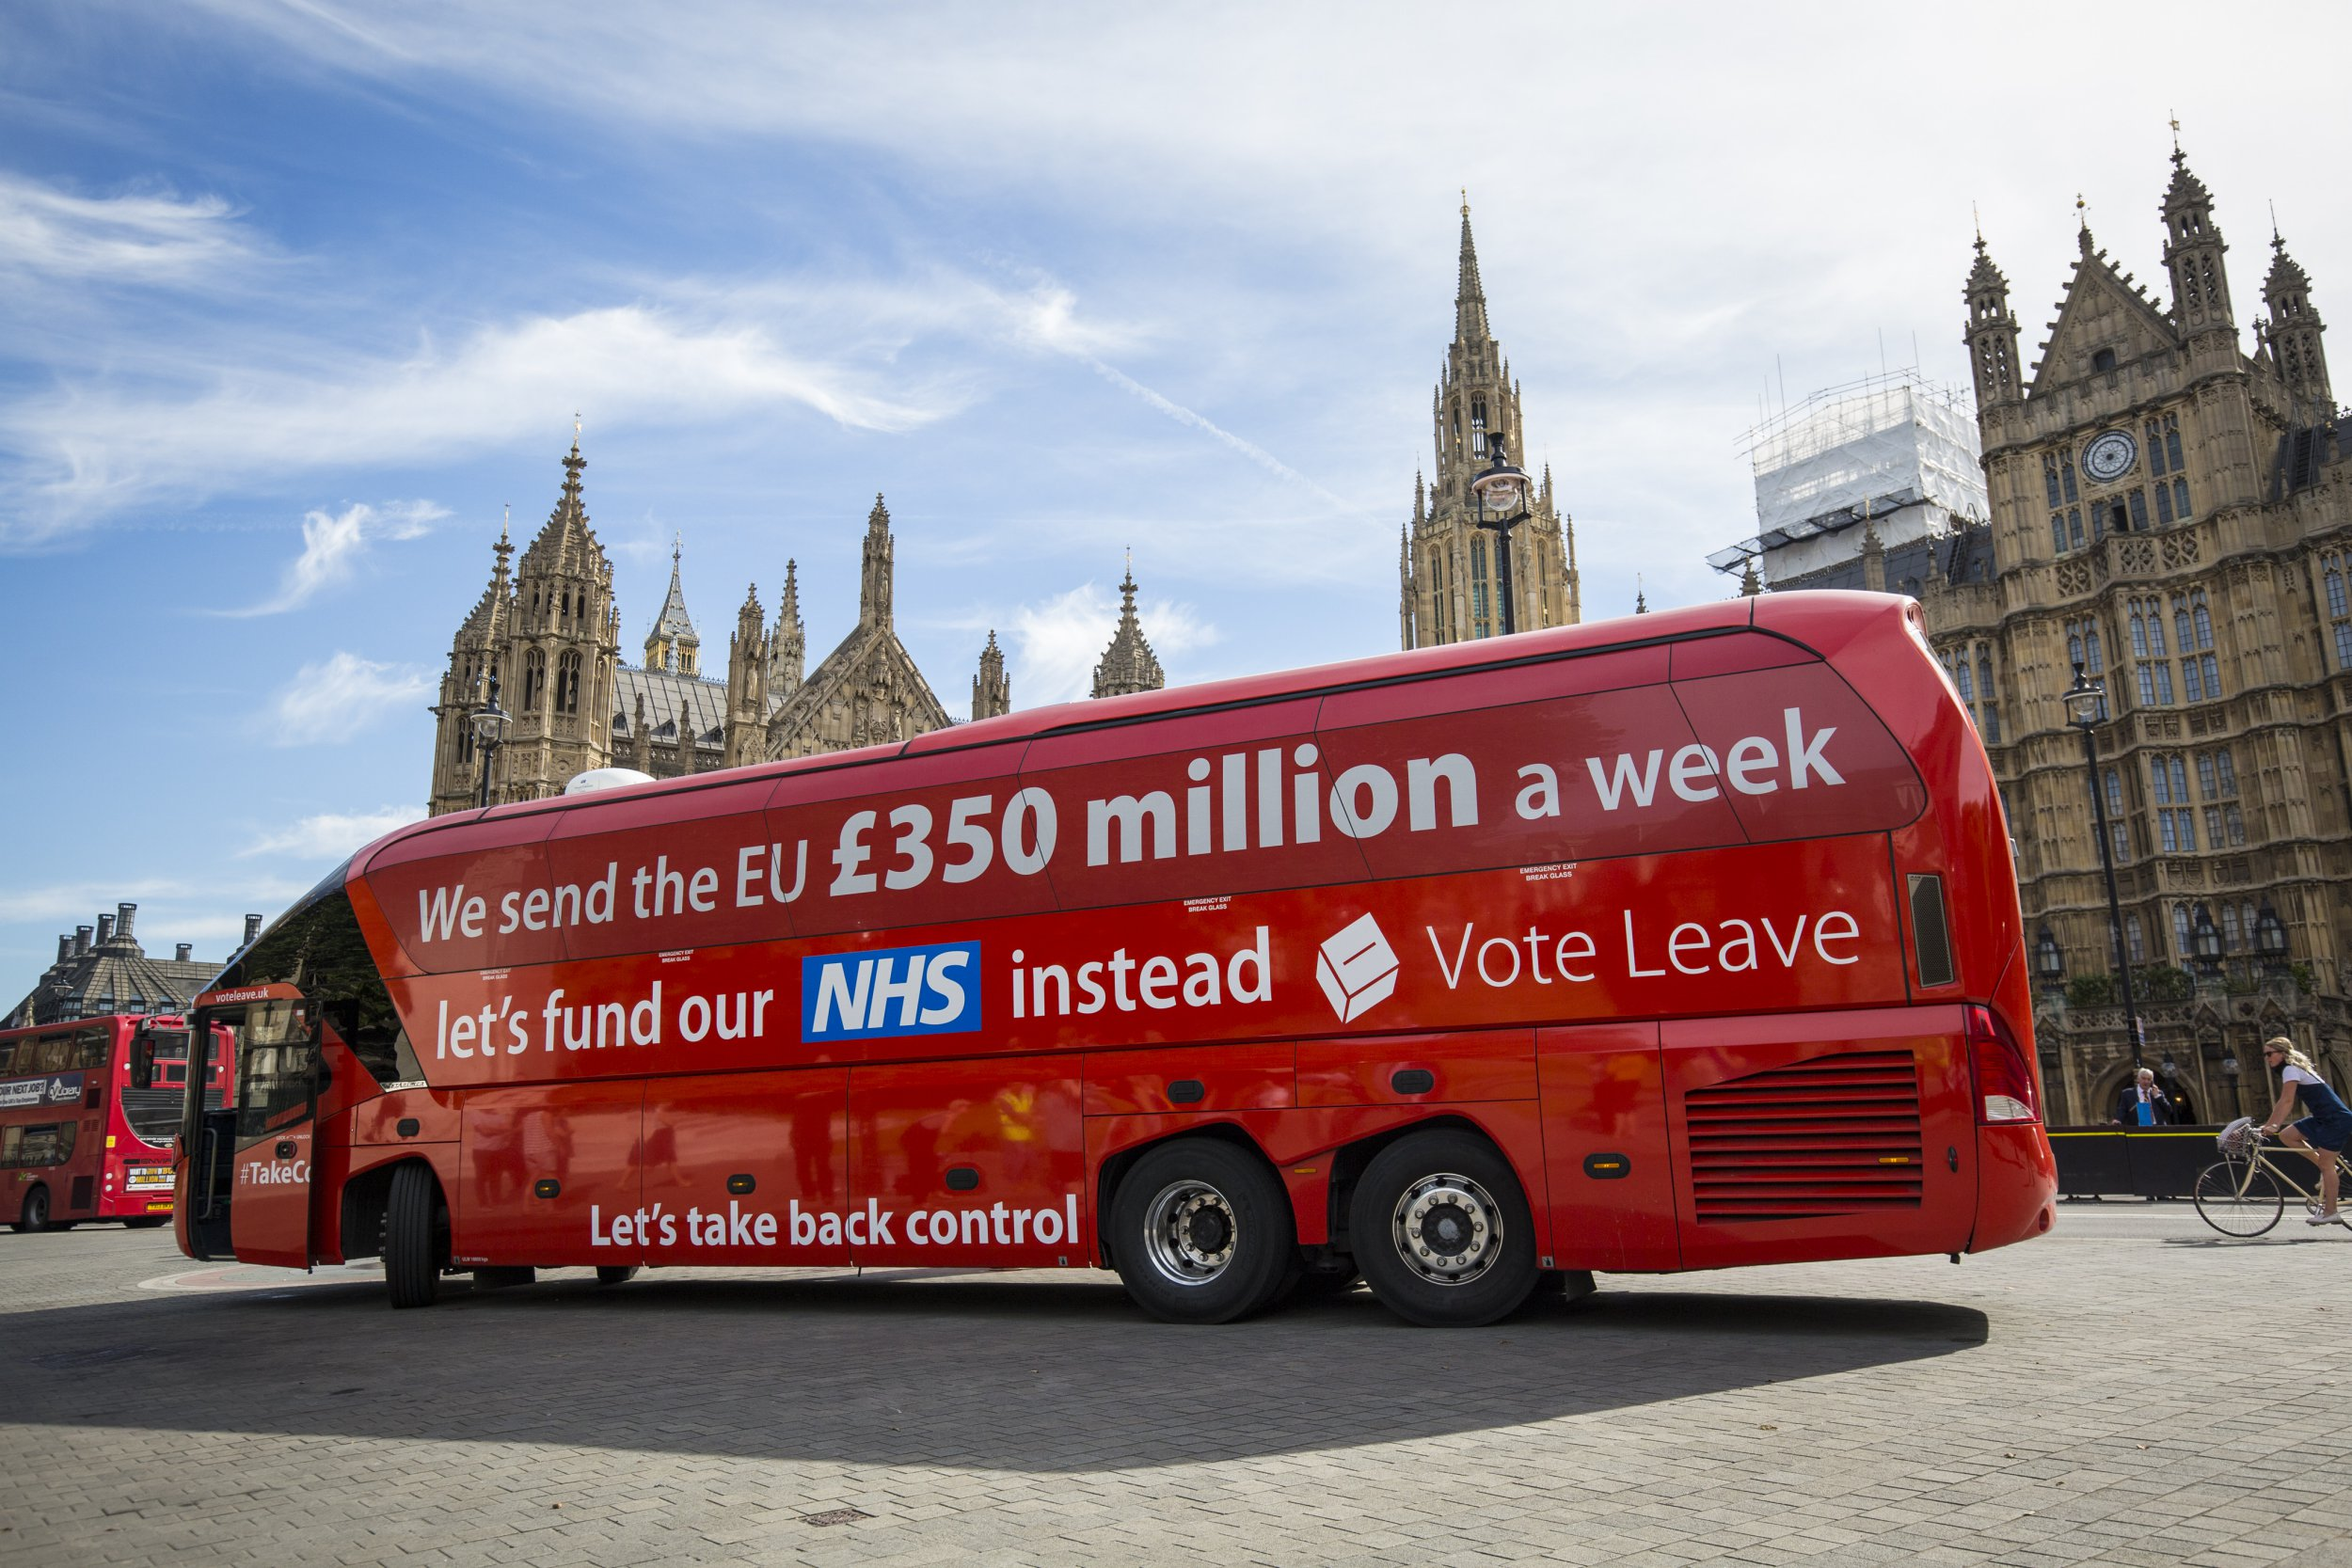 """LONDON, ENGLAND - JULY 18: A 'Vote LEAVE' battle bus is parked outside the Houses of Parliament in Westminster by the environmental campaign group Greenpeace before being re-branded on July 18, 2016 in London, England. The bus which was used during the European Union (EU) referendum campaign and had the statement """"We send the EU ??350 million a week let's fund our NHS instead"""" along the side was today covered with thousands of questions for the new Prime Minister Theresa May and her government about what a 'Brexit' might mean for the environment. (Photo by Jack Taylor/Getty Images)"""